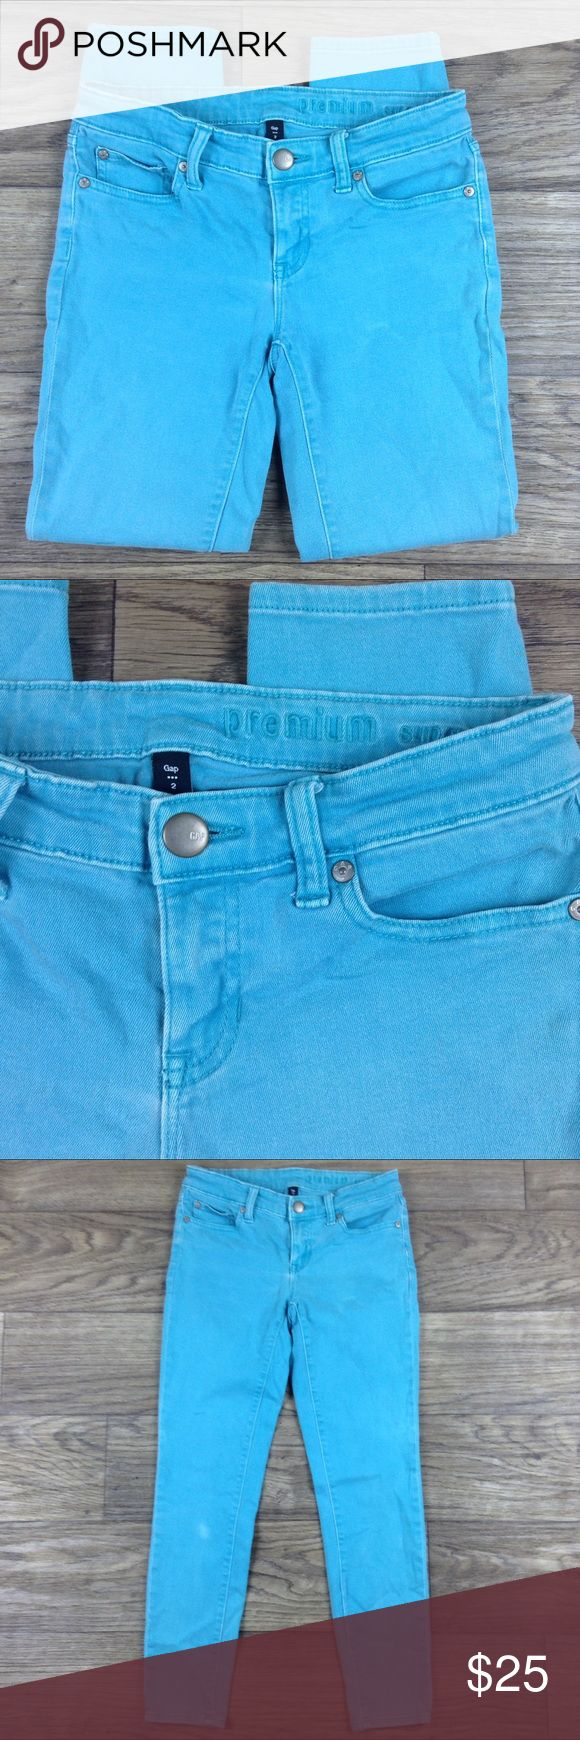 """Gap Premium Super Skinny Ankle Aqua Jeans Sz 2 Gap Premium Super Skinny Ankle Distress/Stone Wash Aqua Jeans. Sz 2 with approximate measurements of 14"""" waist, 16"""" hip, 26.5"""" inseam, and 7.5"""" rise. Pre-owned in great condition with minimal wear. Please look at all pictures and if you have any questions, leave a comment below. Thank you for looking! GAP Jeans Skinny"""